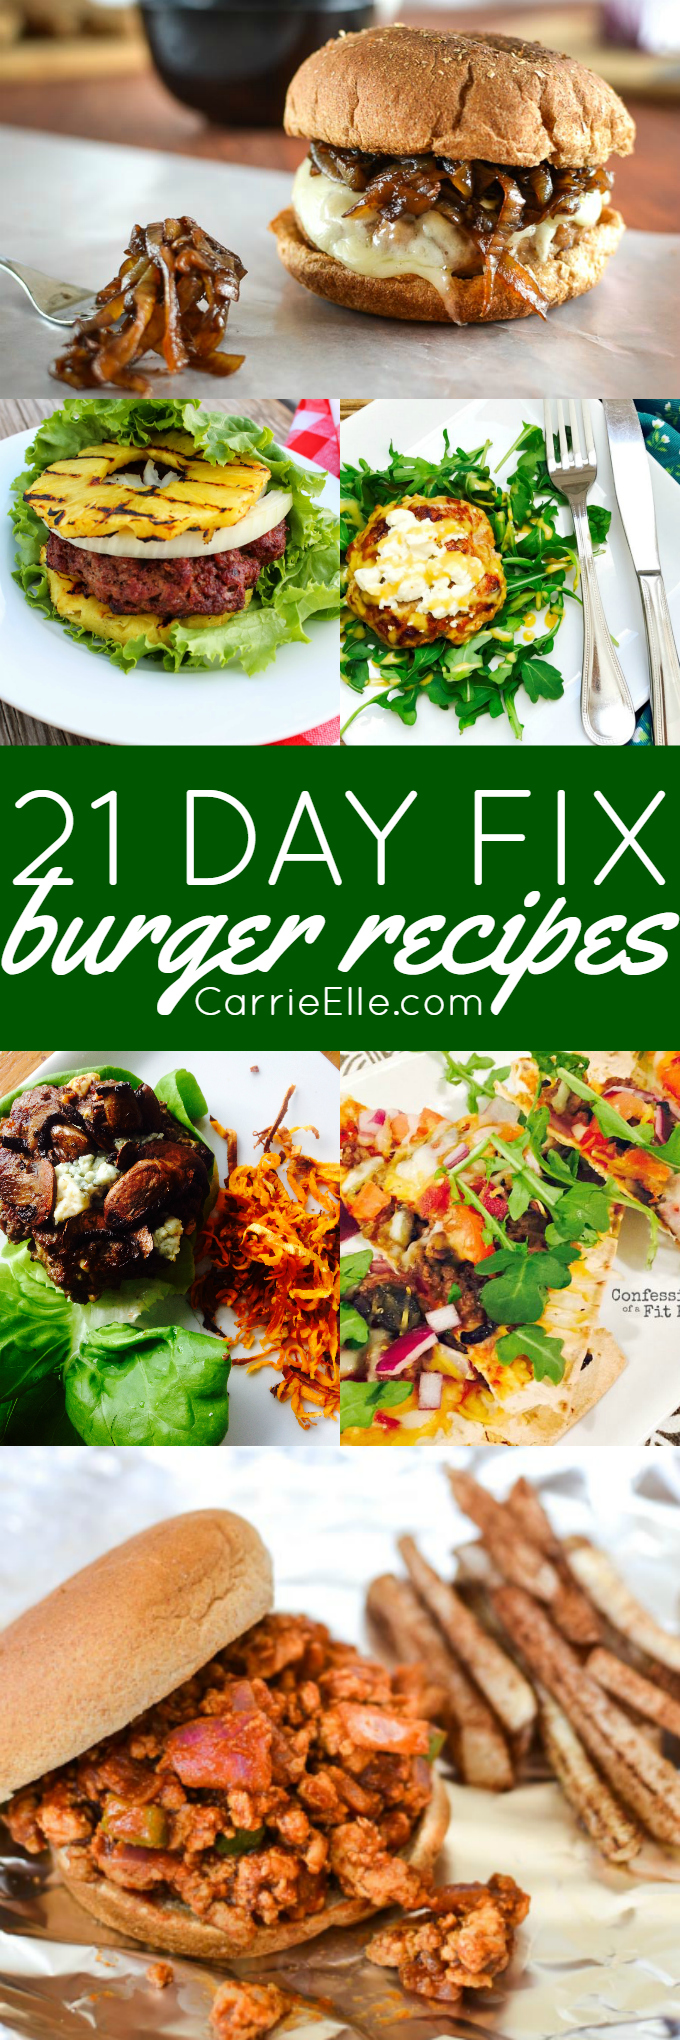 21 Day Fix Burger Recipes